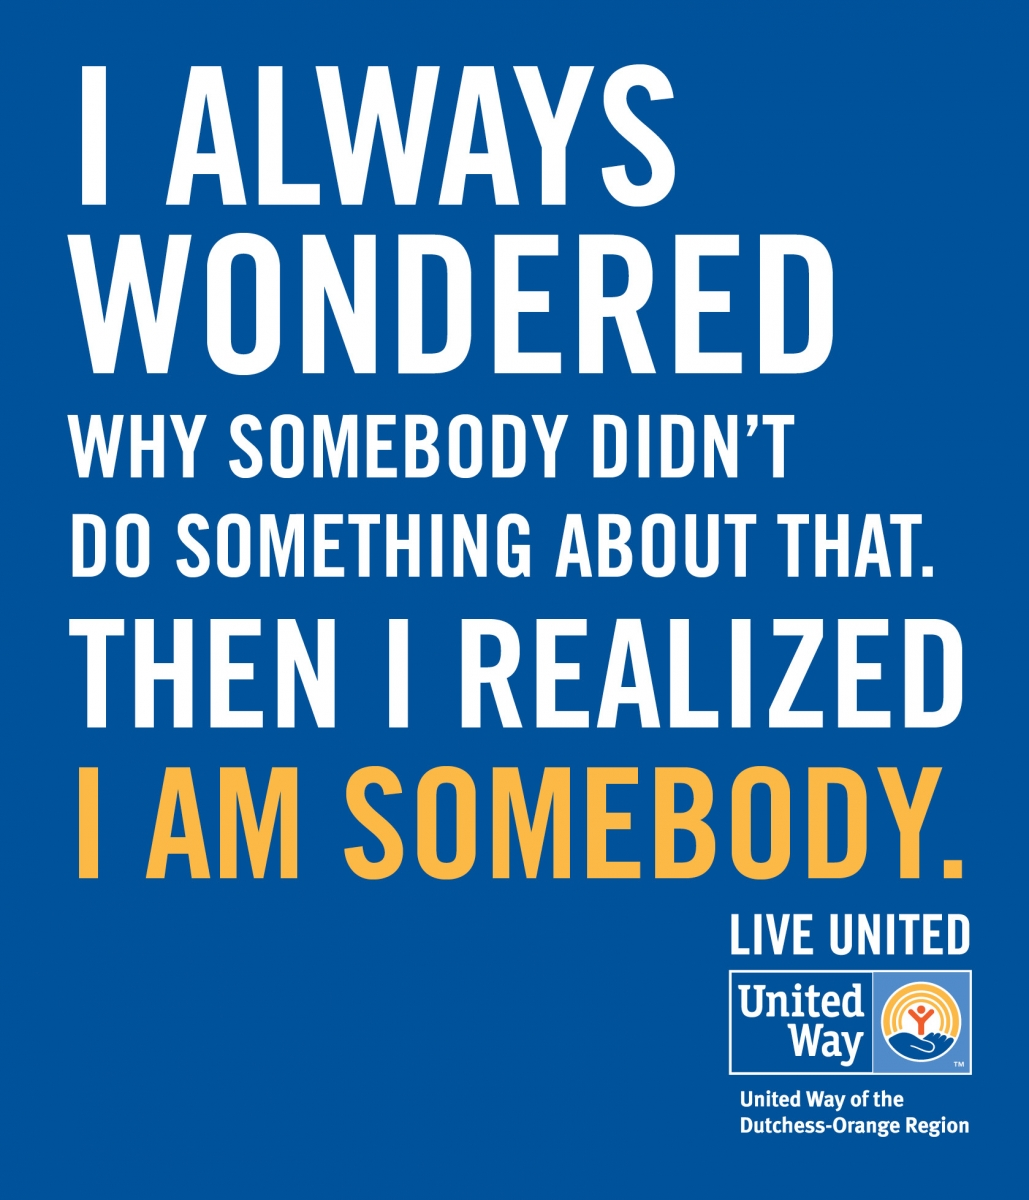 volunteer united way of dutchess orange region the opportunity to make new friends meet people common interests expand your access